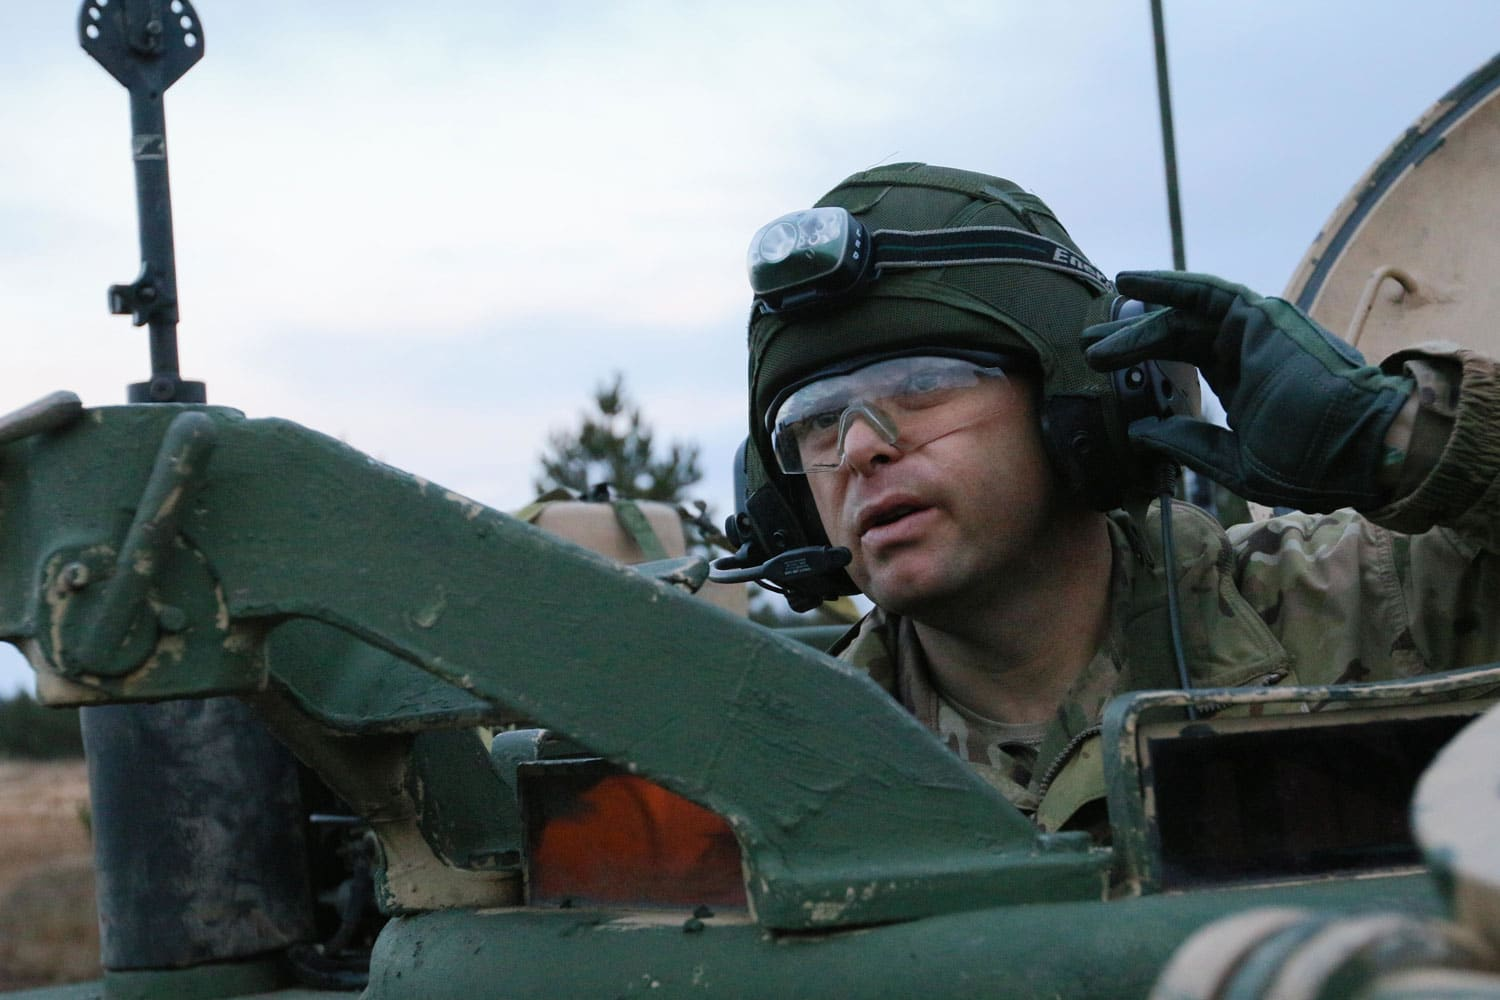 "U.S. Army Capt. Matt Eley, a Carey, Ohio native and the commander of ""Tomahawk"" Company, 5th Squadron, 4th Cavalry Regiment, 2nd Armored Brigade Combat Team, 1st Infantry Division, receives information on his headset regarding the movements of his Soldiers during training in Adazi, Latvia."